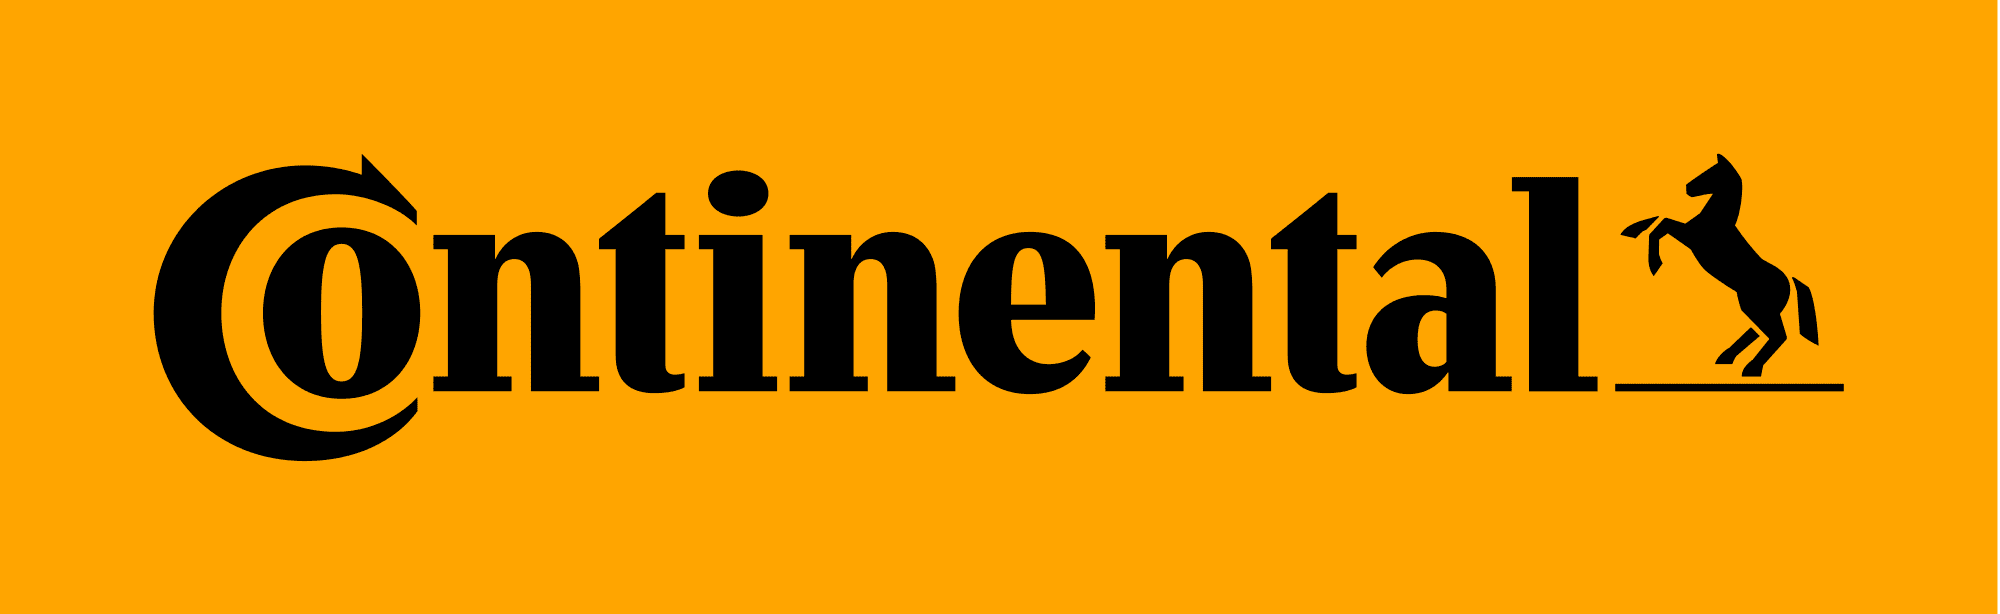 Continental logo meaning